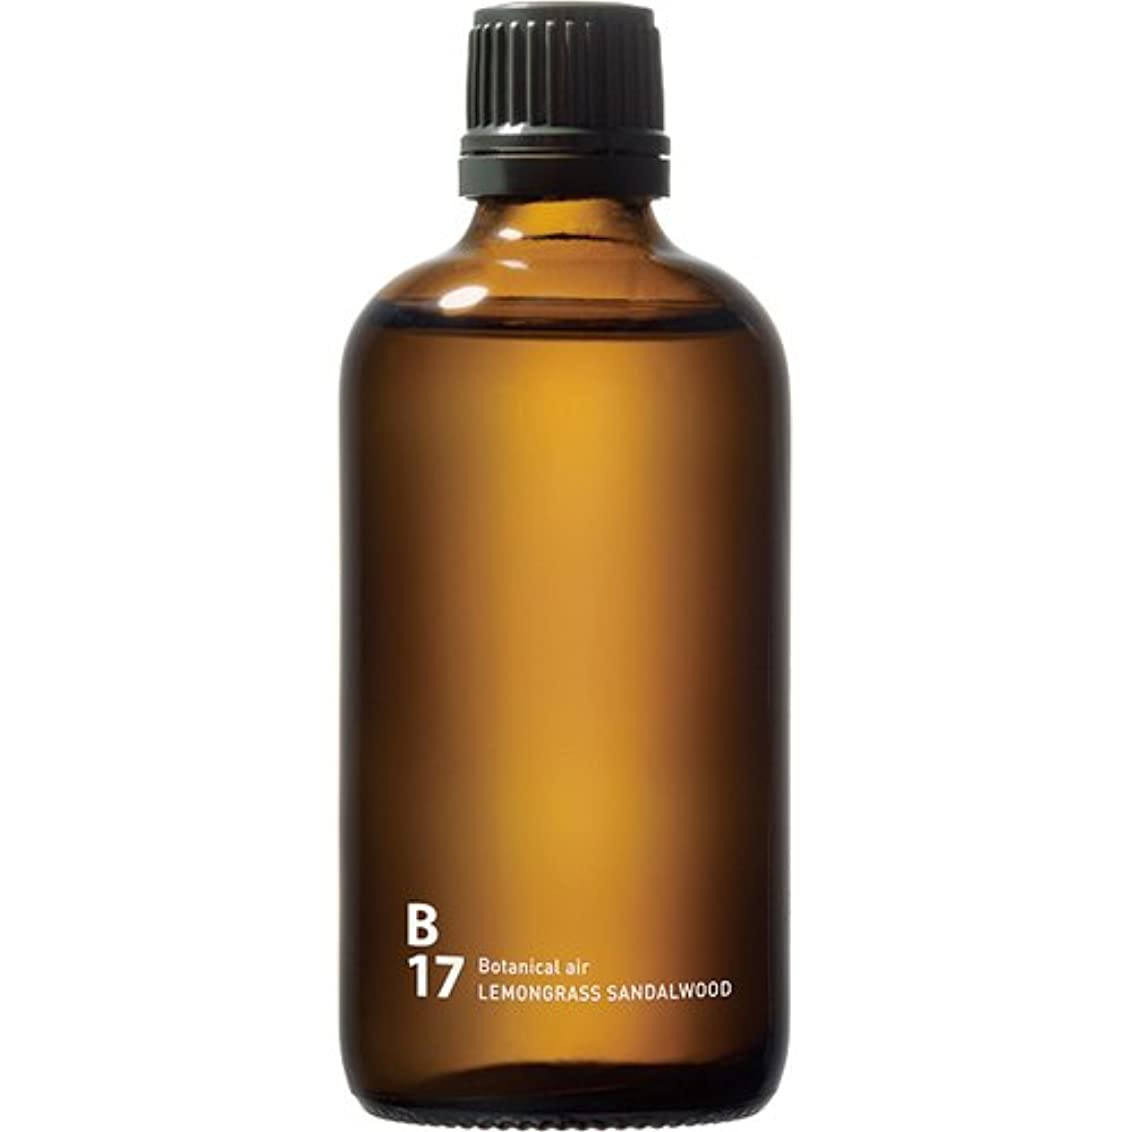 B17 LEMONGRASS SANDALWOOD piezo aroma oil 100ml